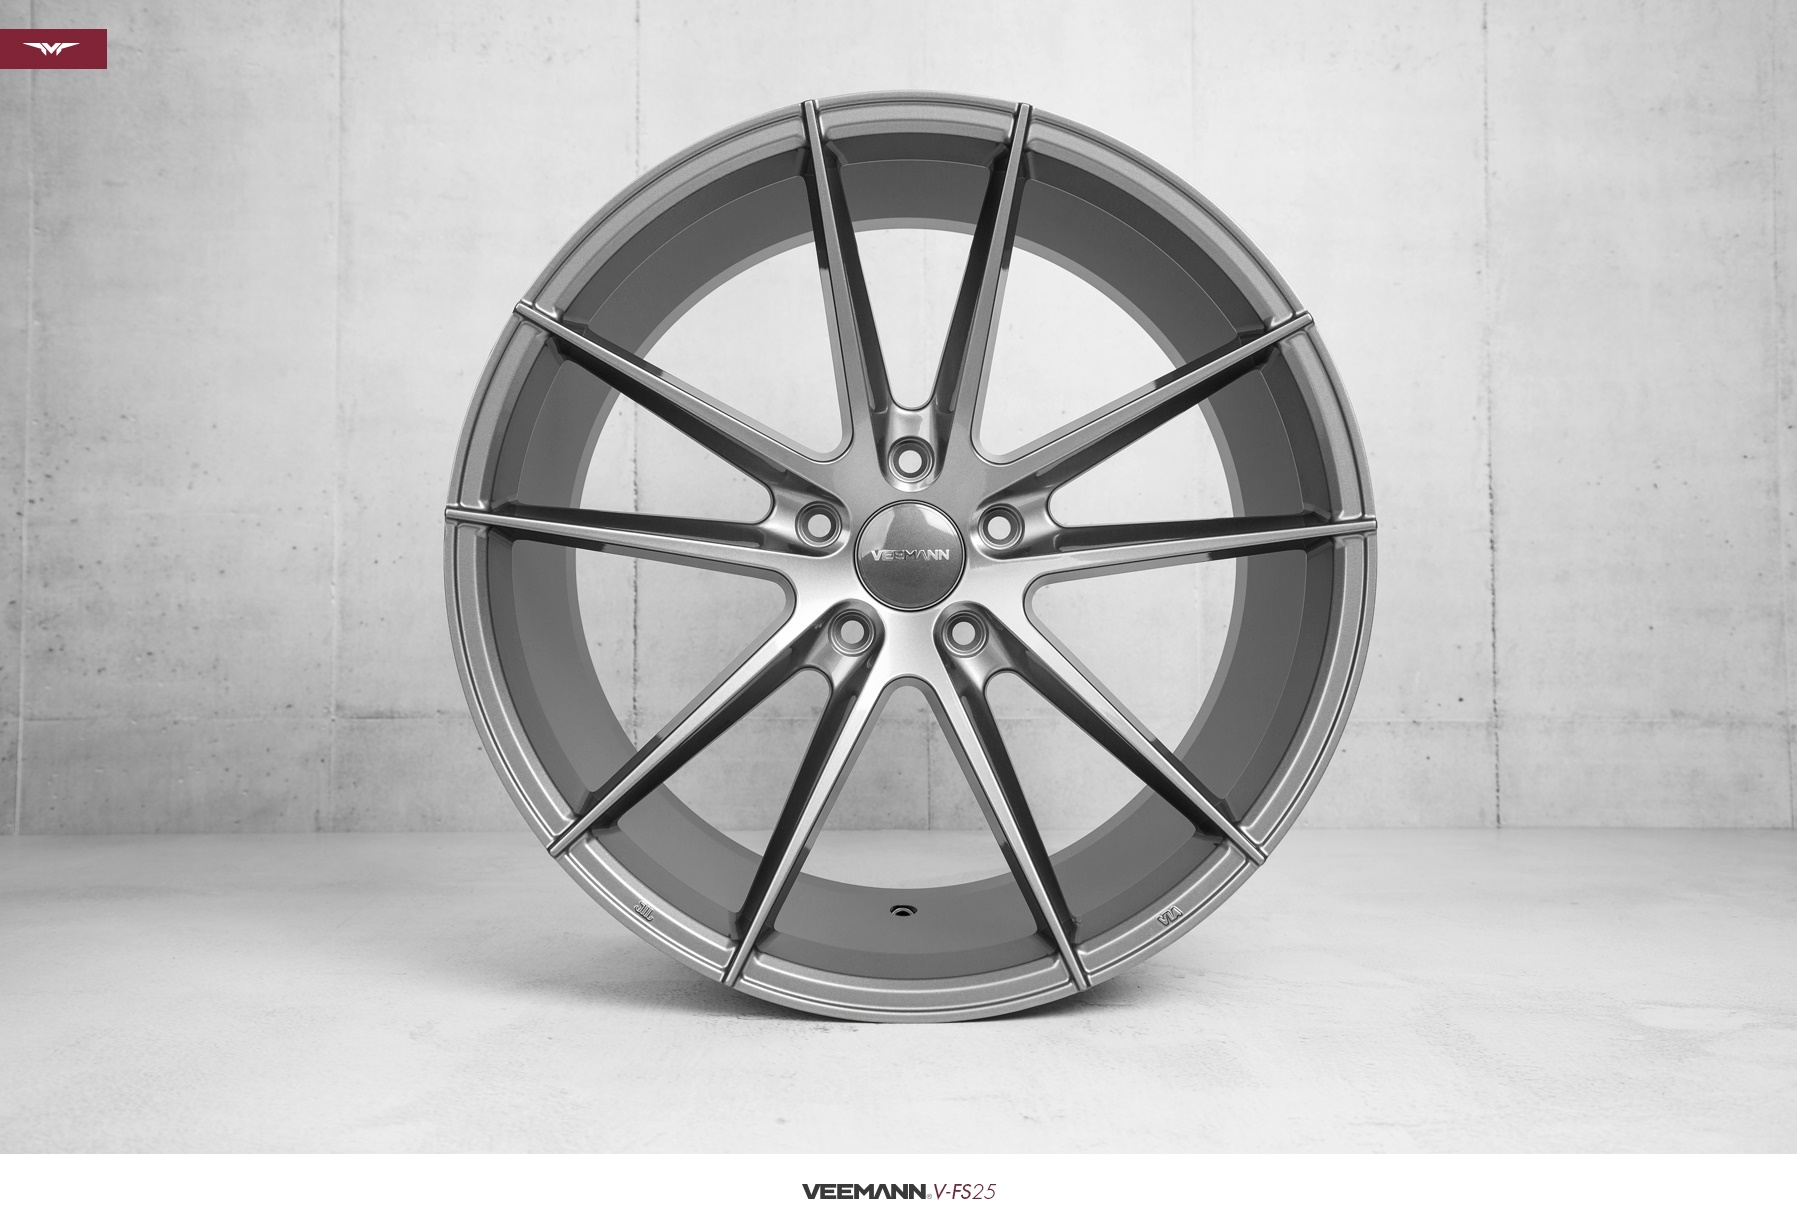 "NEW 19"" VEEMANN V-FS25 ALLOY WHEELS IN GLOSS GRAPHITE WITH WIDER 9.5"" REARS"